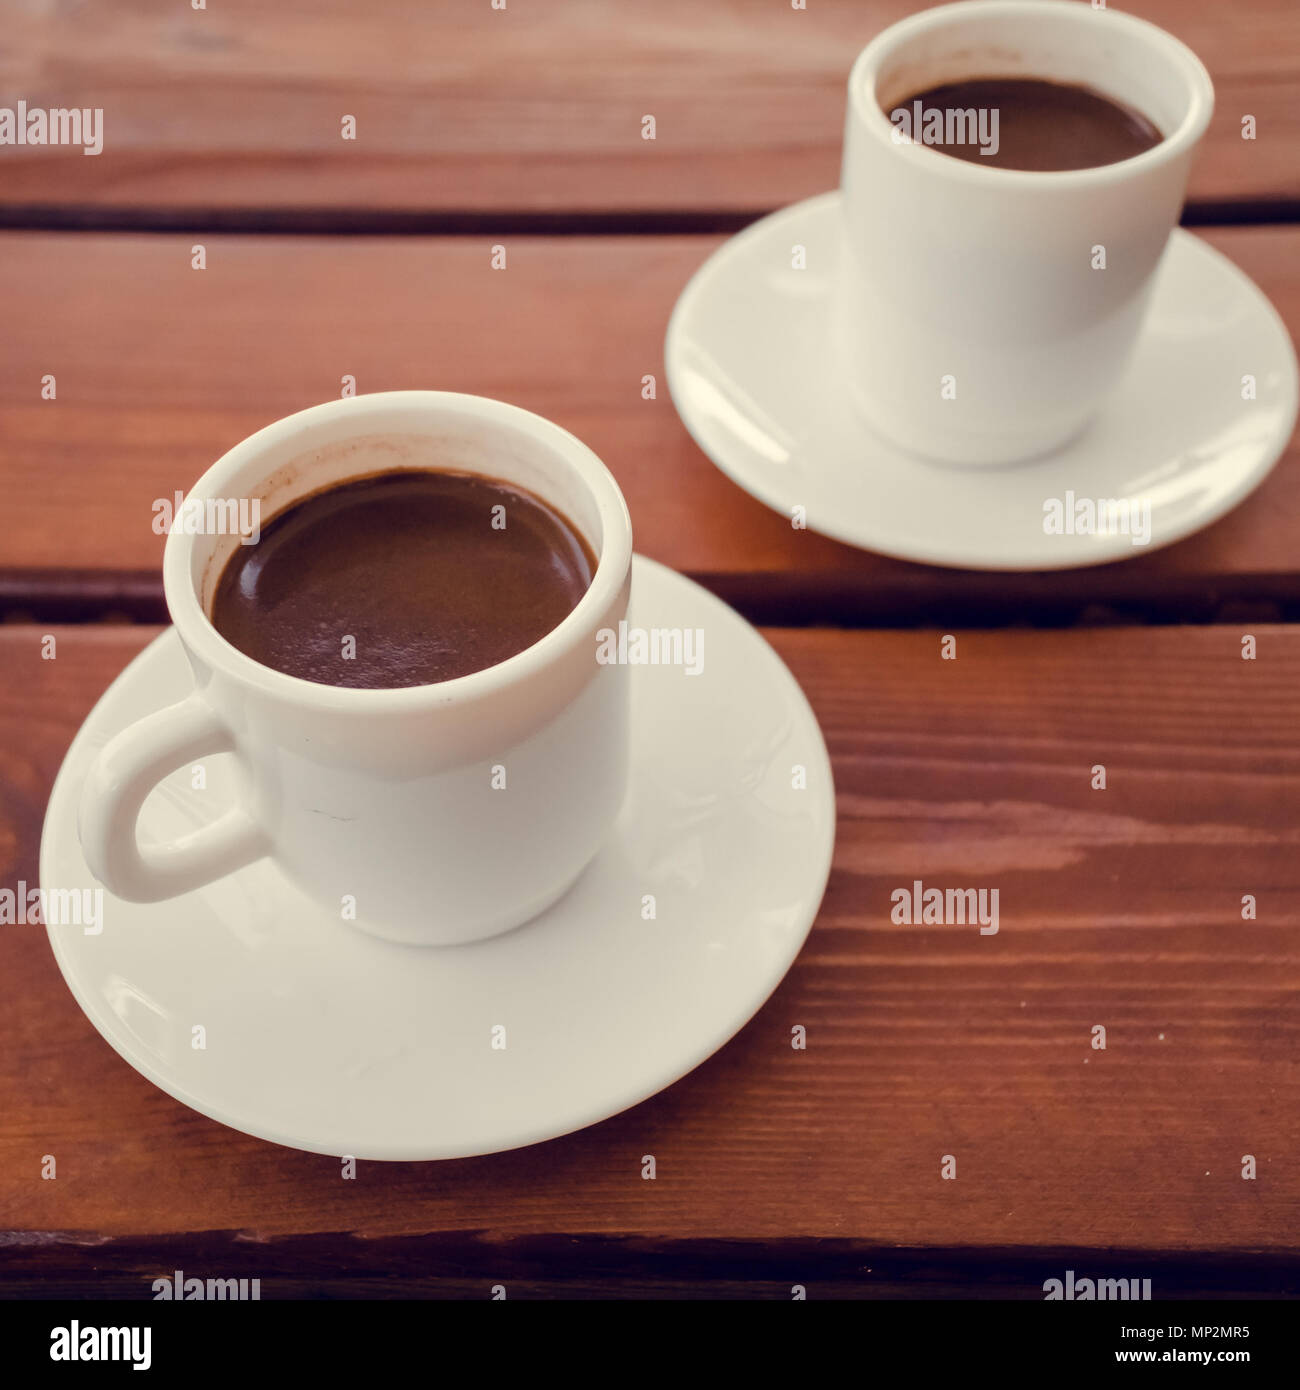 Two Cups Of Turkish Coffee On The Table White Cup Wooden Kopi Wihte Background Break